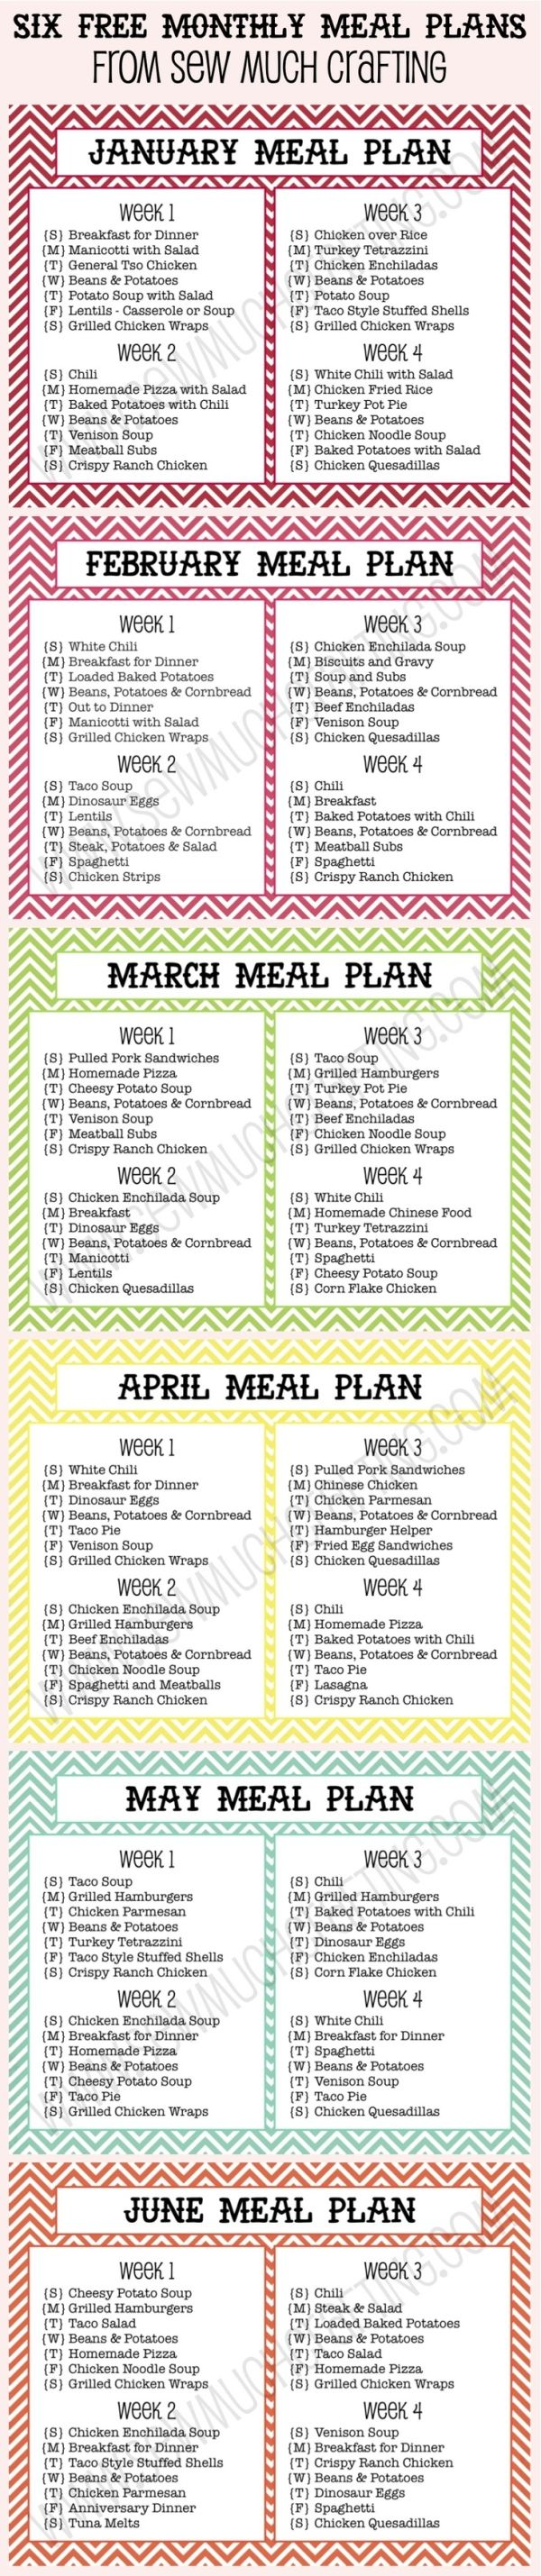 Six FREE Monthly Meal Plan Printables - a decent starting point to tweak for our gf family by fsdsfds